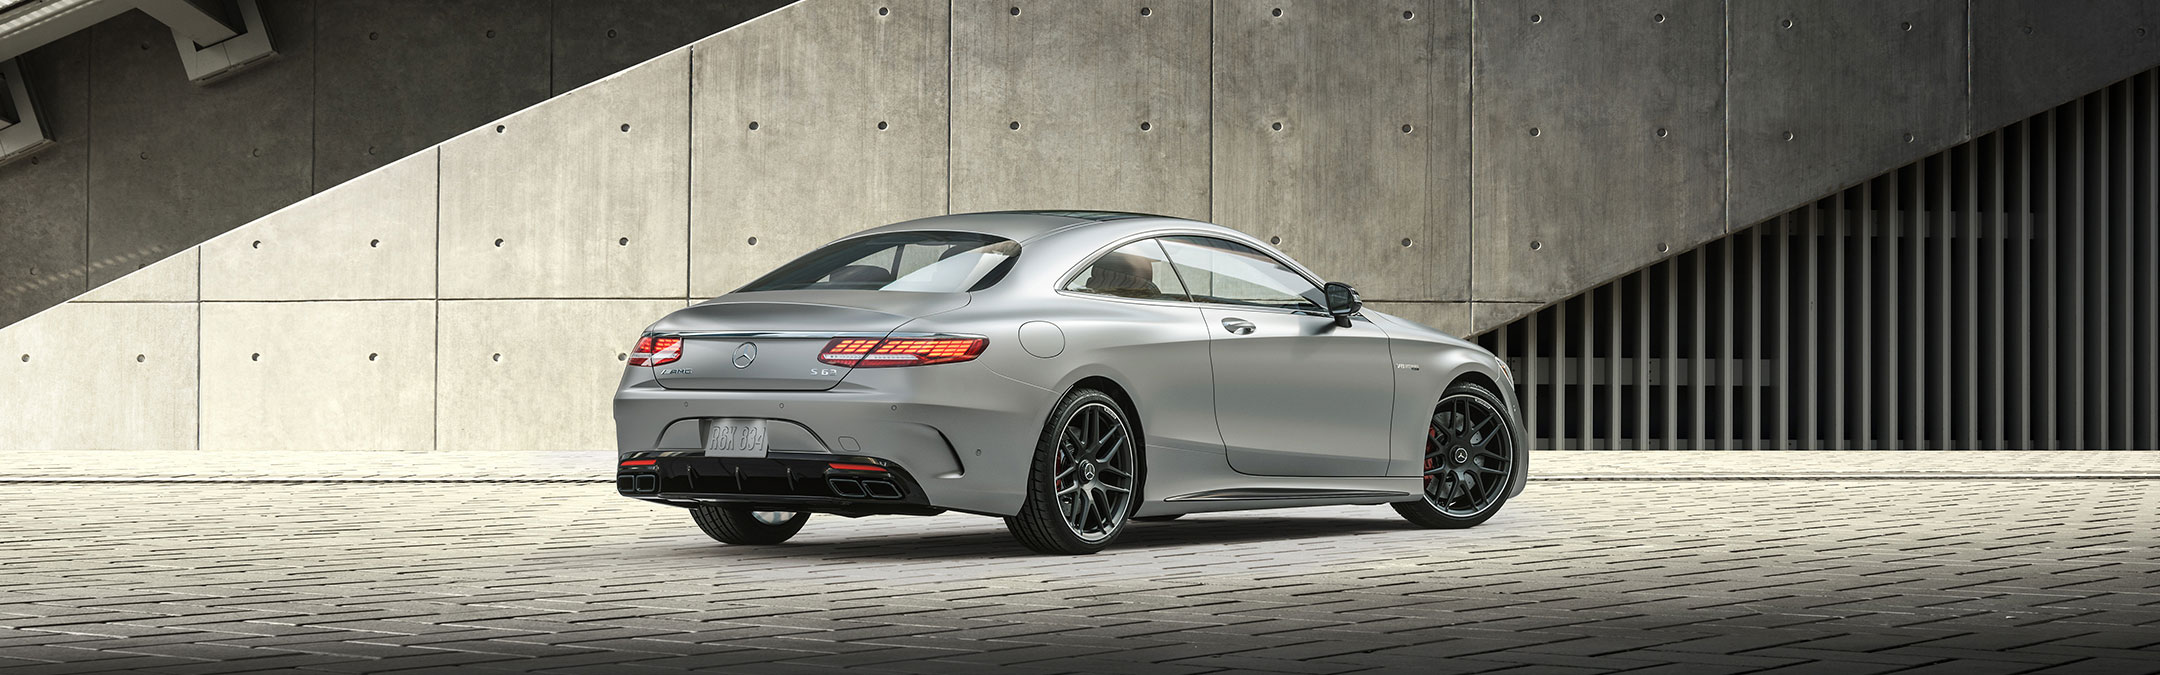 2019 Mercedes-AMG S-Class Coupe